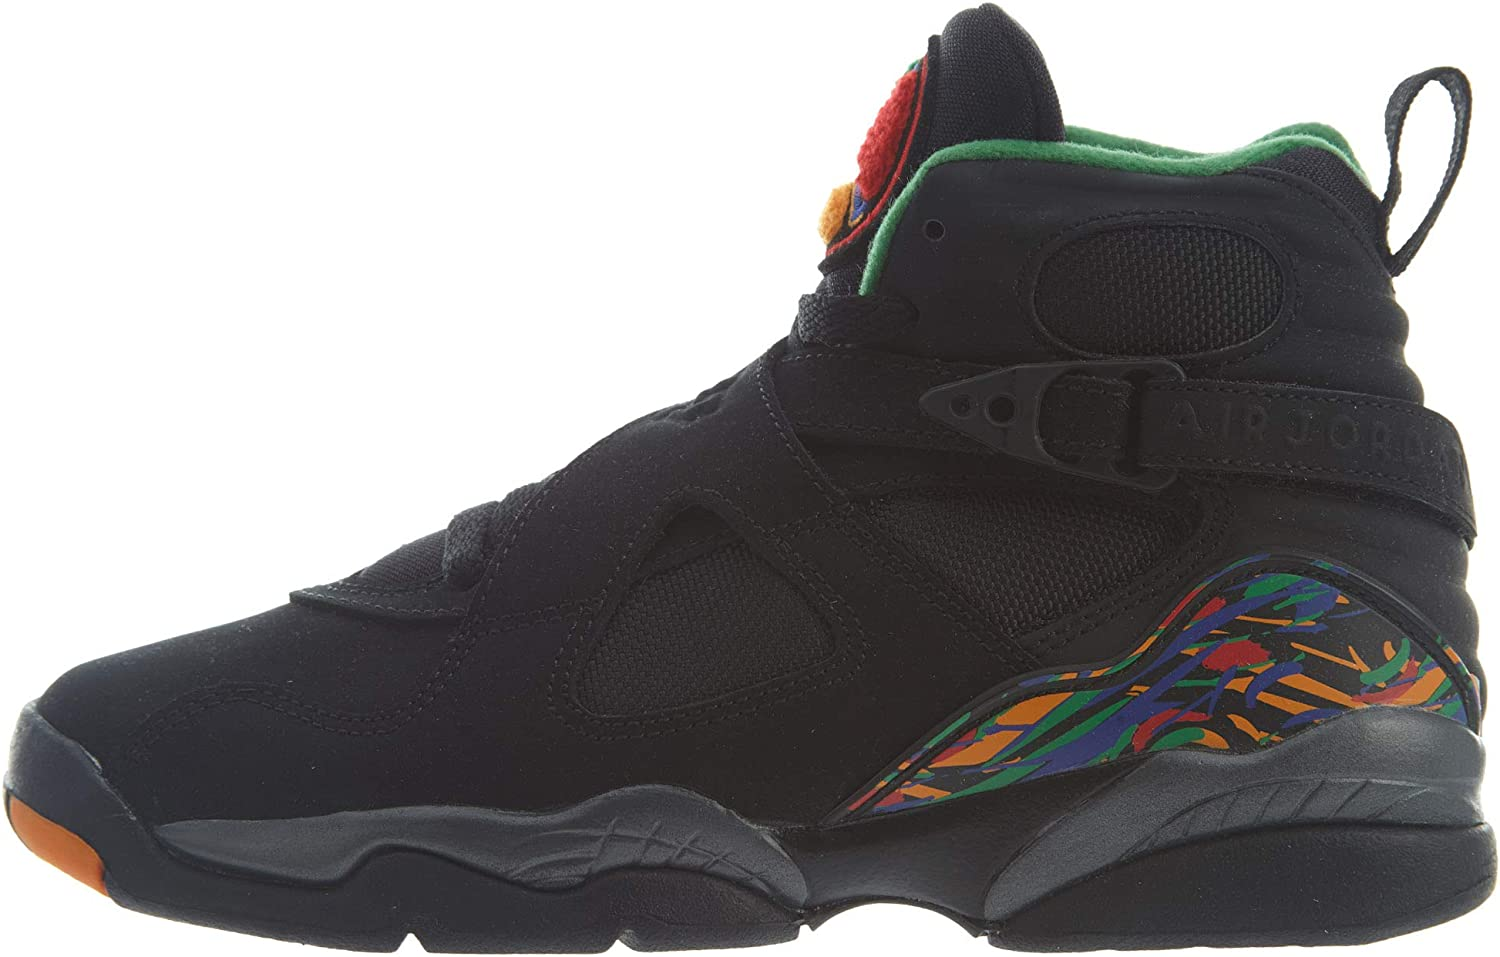 Nike Air Jordan 8 Retro (GS) Big Kids Basketball Shoes